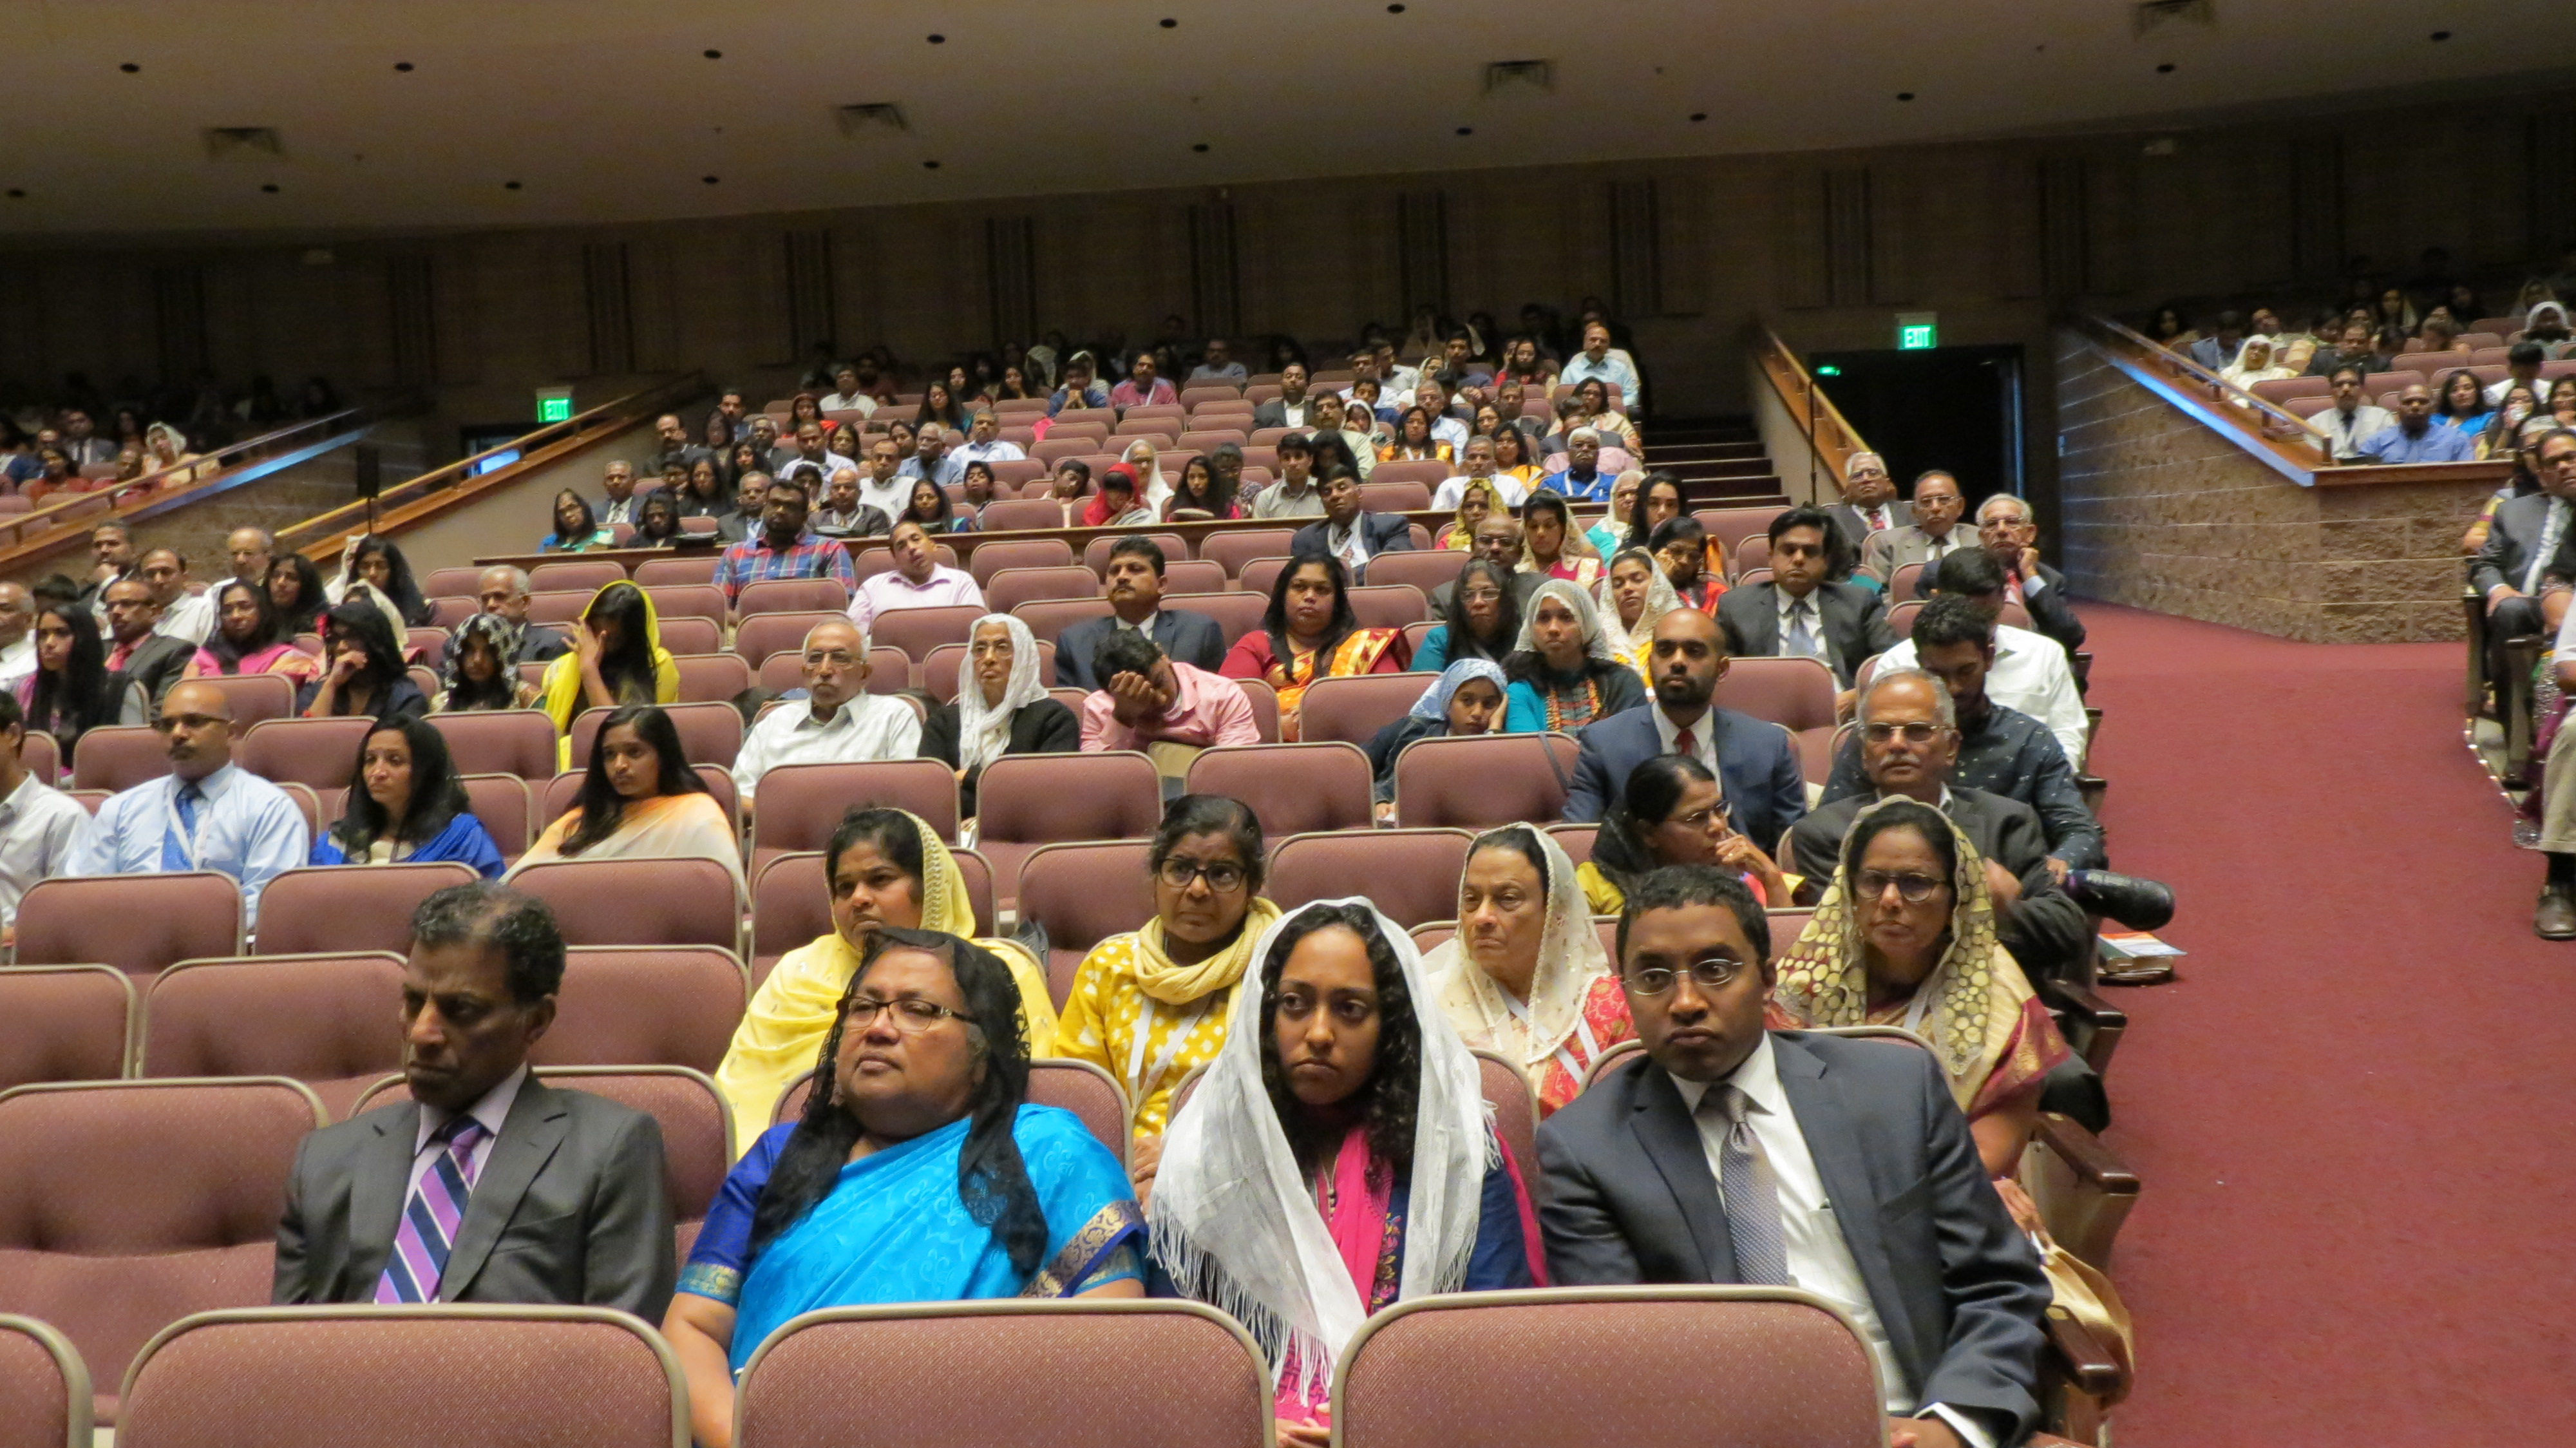 5th Day PLENARY AUDIENCE 9